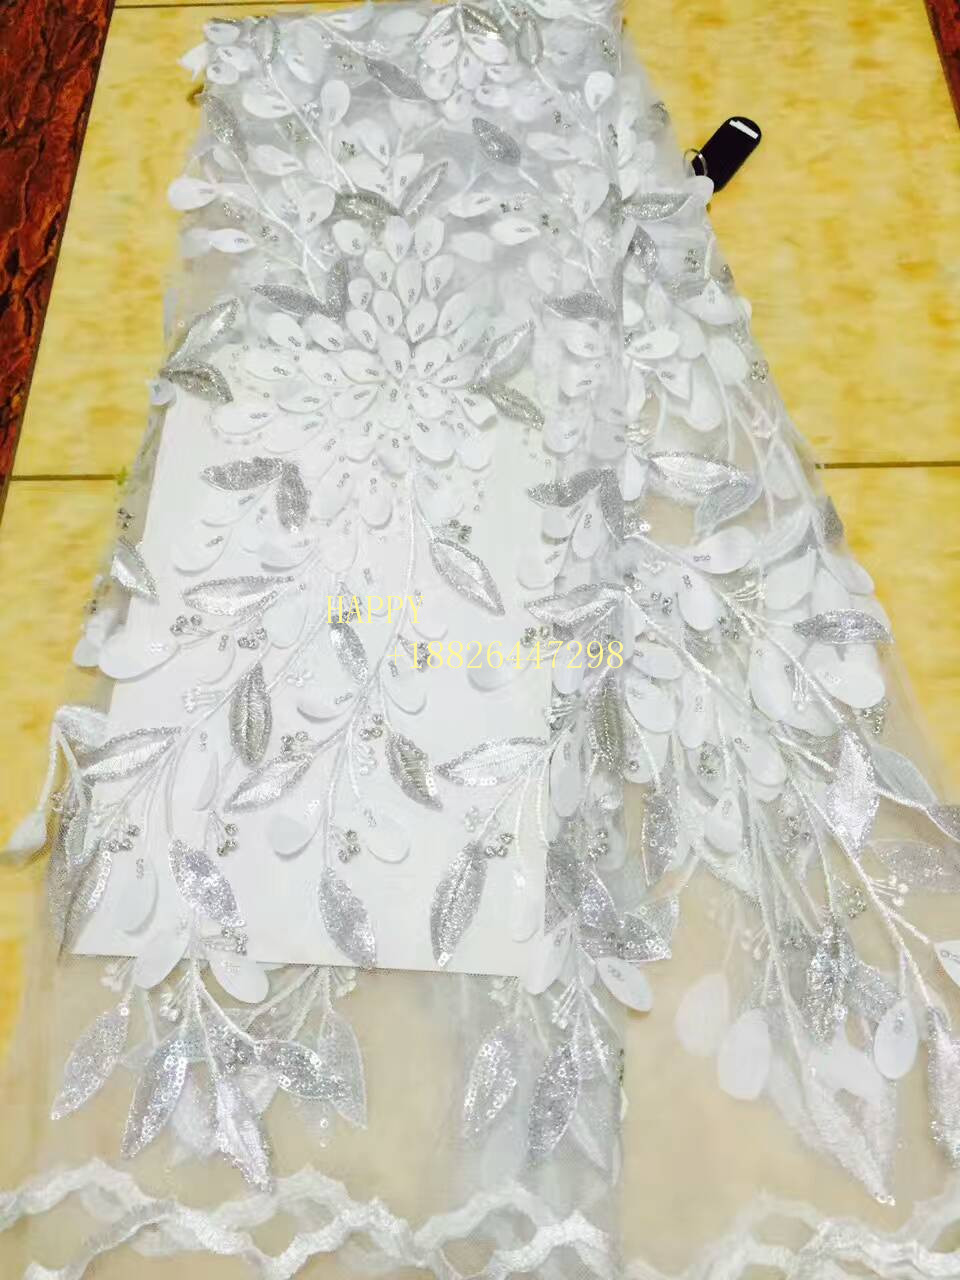 Apparel & Merchandise The Best 3d Lace Fabric 2018 High Quality Lace African Lace Fabric Net French Tulle Lace Fabric Lr043 Free Ship By Dhl